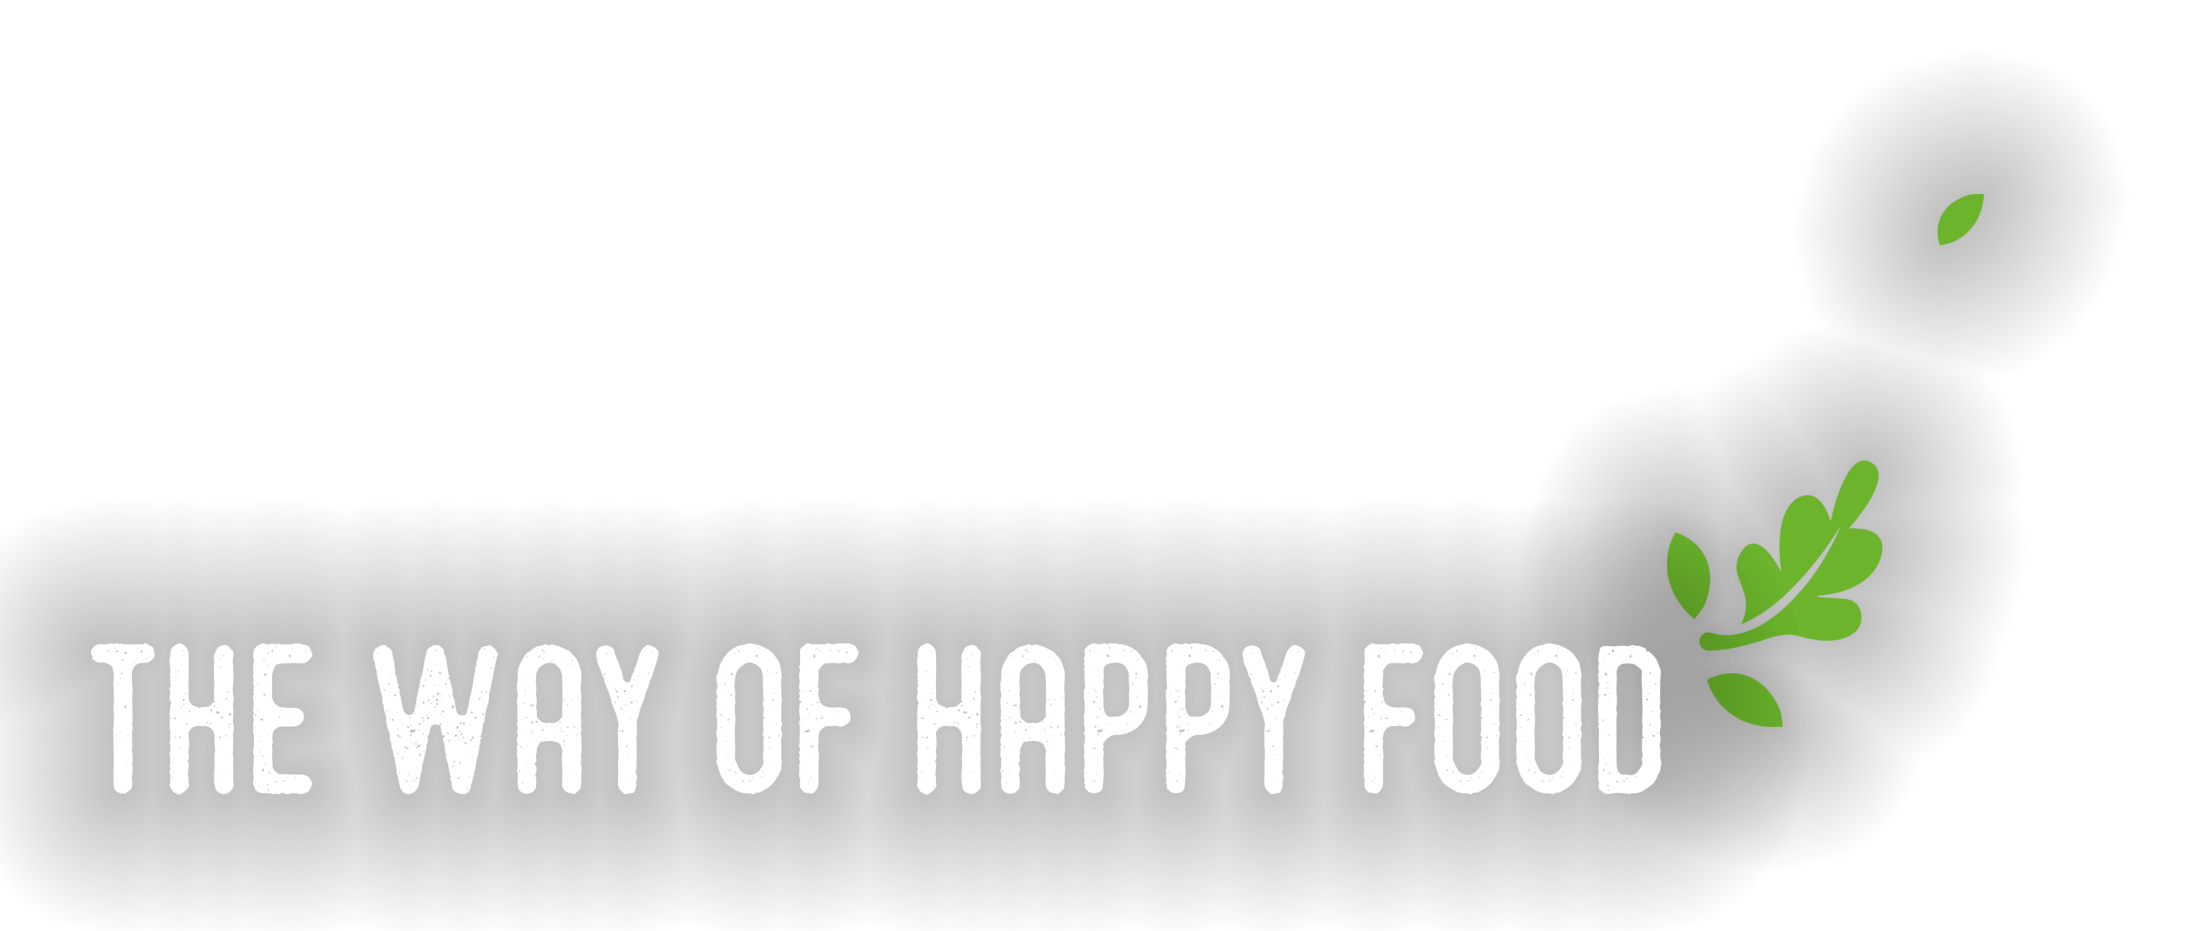 The way of happy food